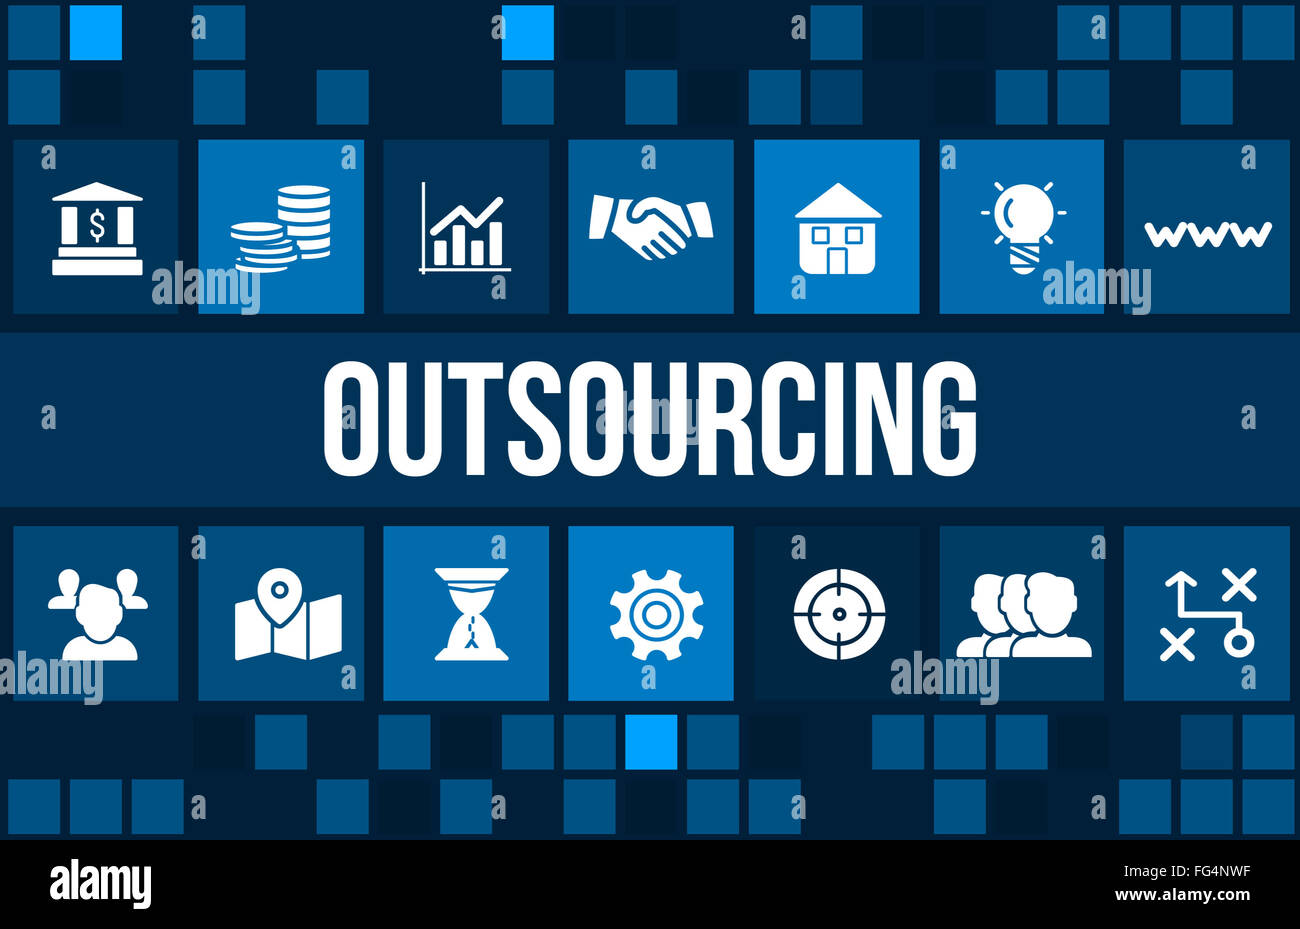 Outsourcing concept image with business icons and copyspace. - Stock Image